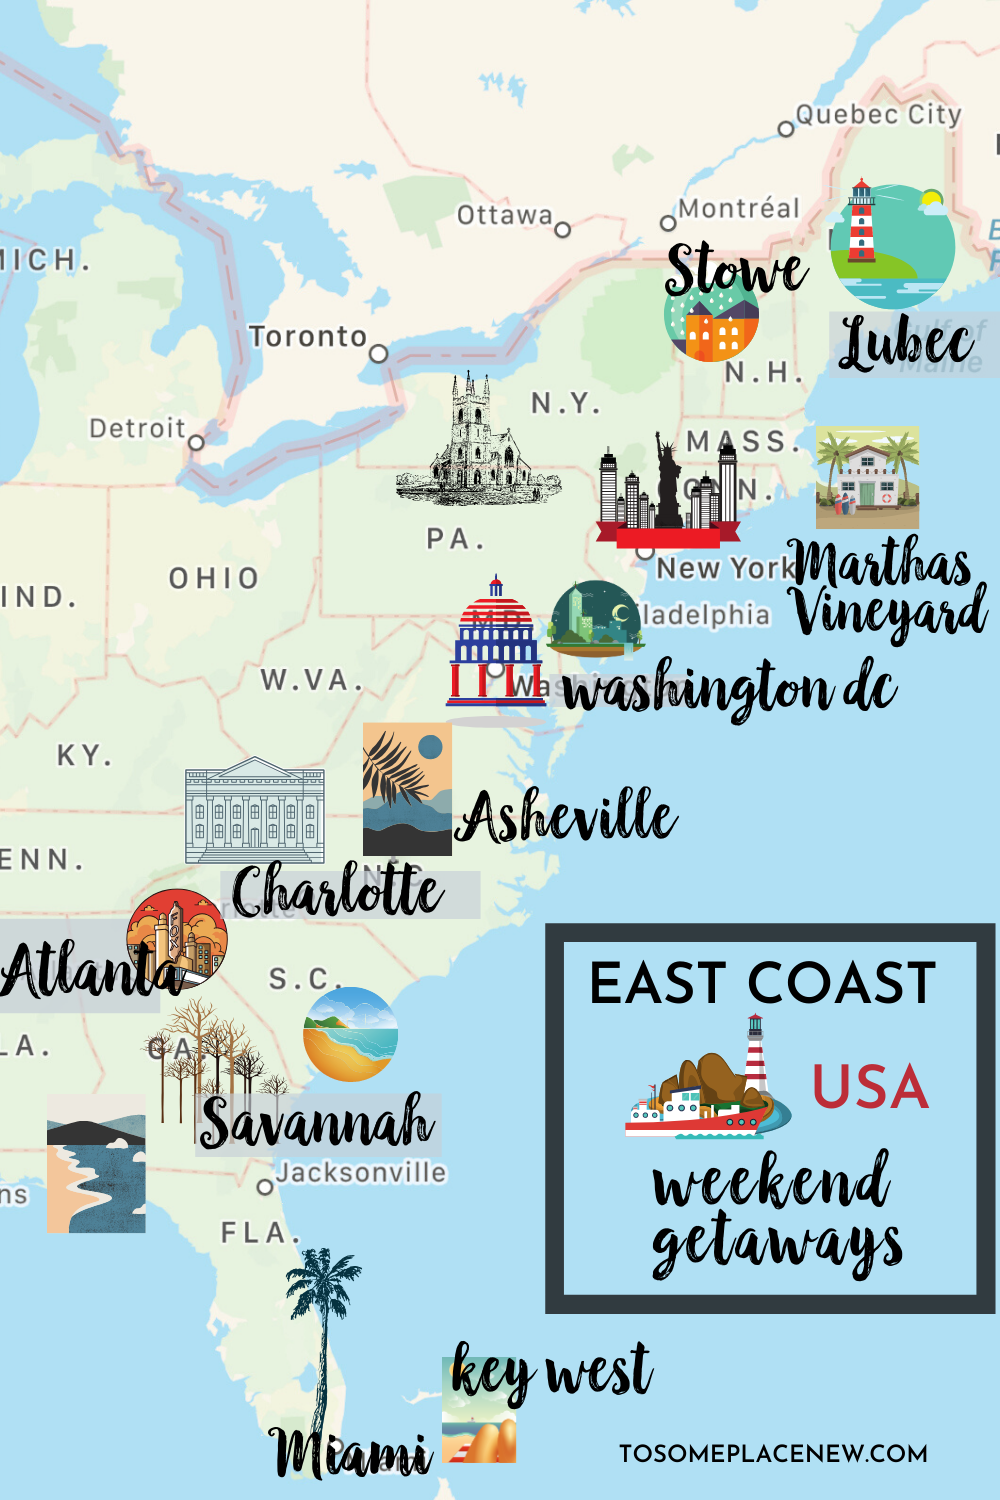 East coast USA vacation ideas East coast map | east coast weekend getaway for couples family or east coast road trips | visit beaches historic places beautiful destinations #beautifulplaces #eastcoast #roadtrip #weekend